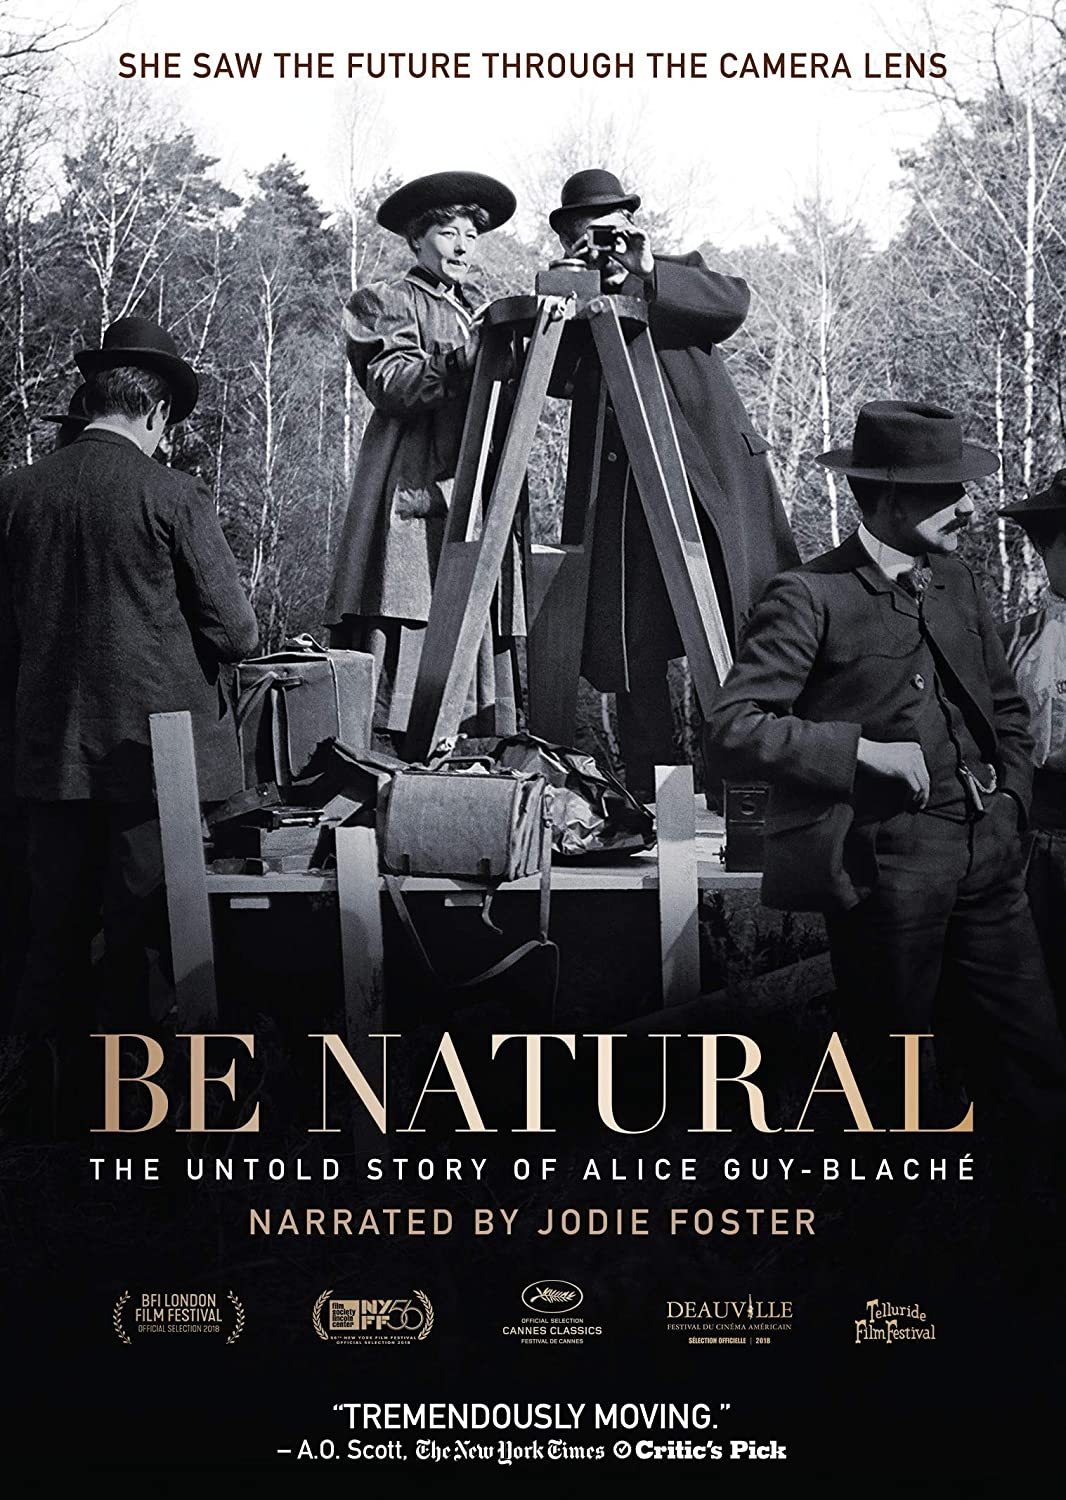 Amazon.com: Be Natural: The Untold Story of Alice Guy-Blache: Alice Guy  Blache, Richard Abel, Pamela B. Green: Movies & TV